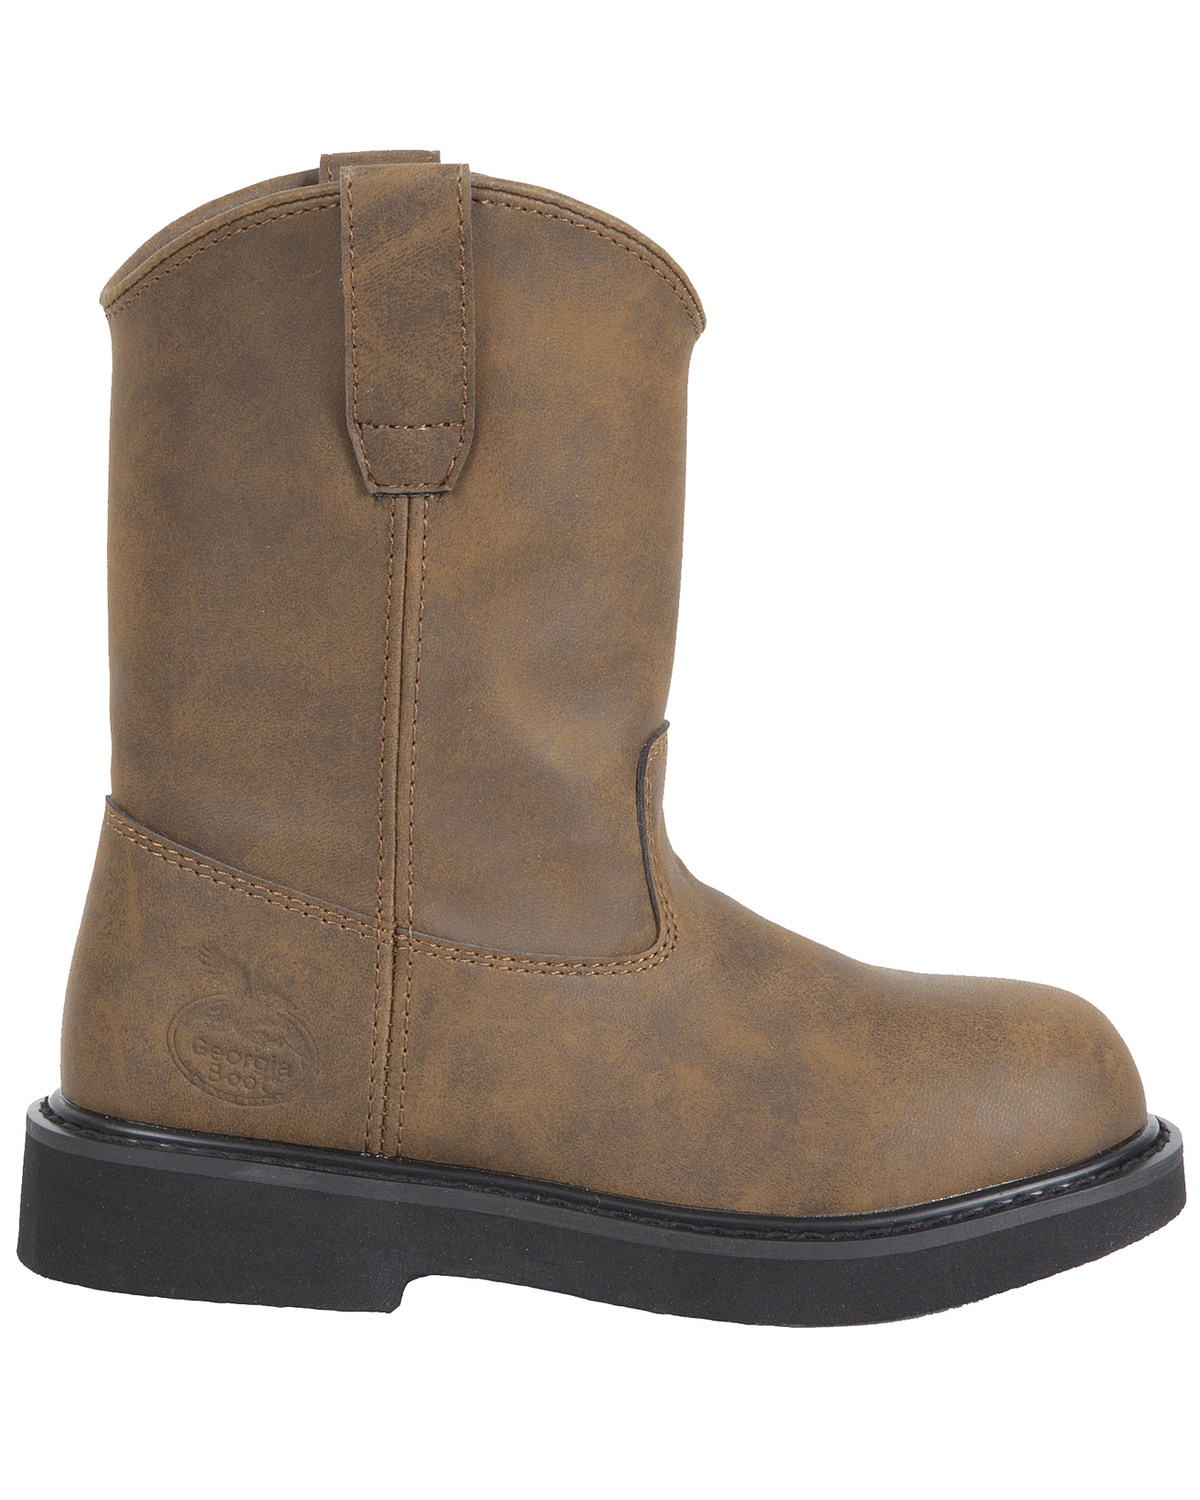 Free shipping BOTH ways on Boots, Boys, from our vast selection of styles. Fast delivery, and 24/7/ real-person service with a smile. Click or call